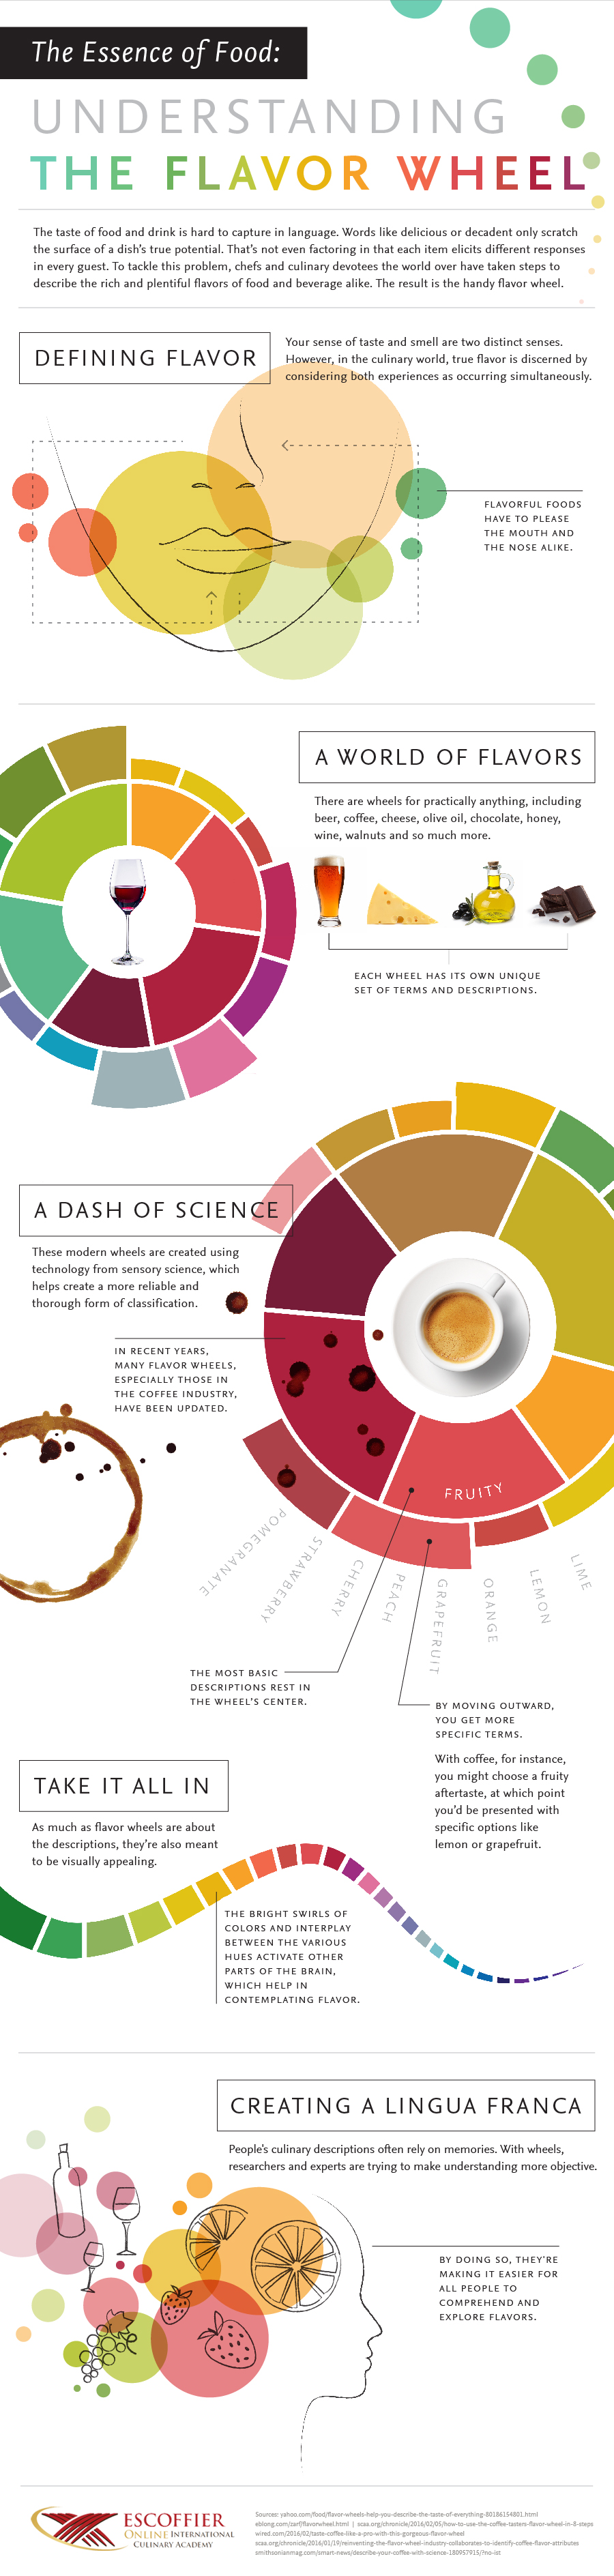 Flavor wheels help people describe food more objectively.